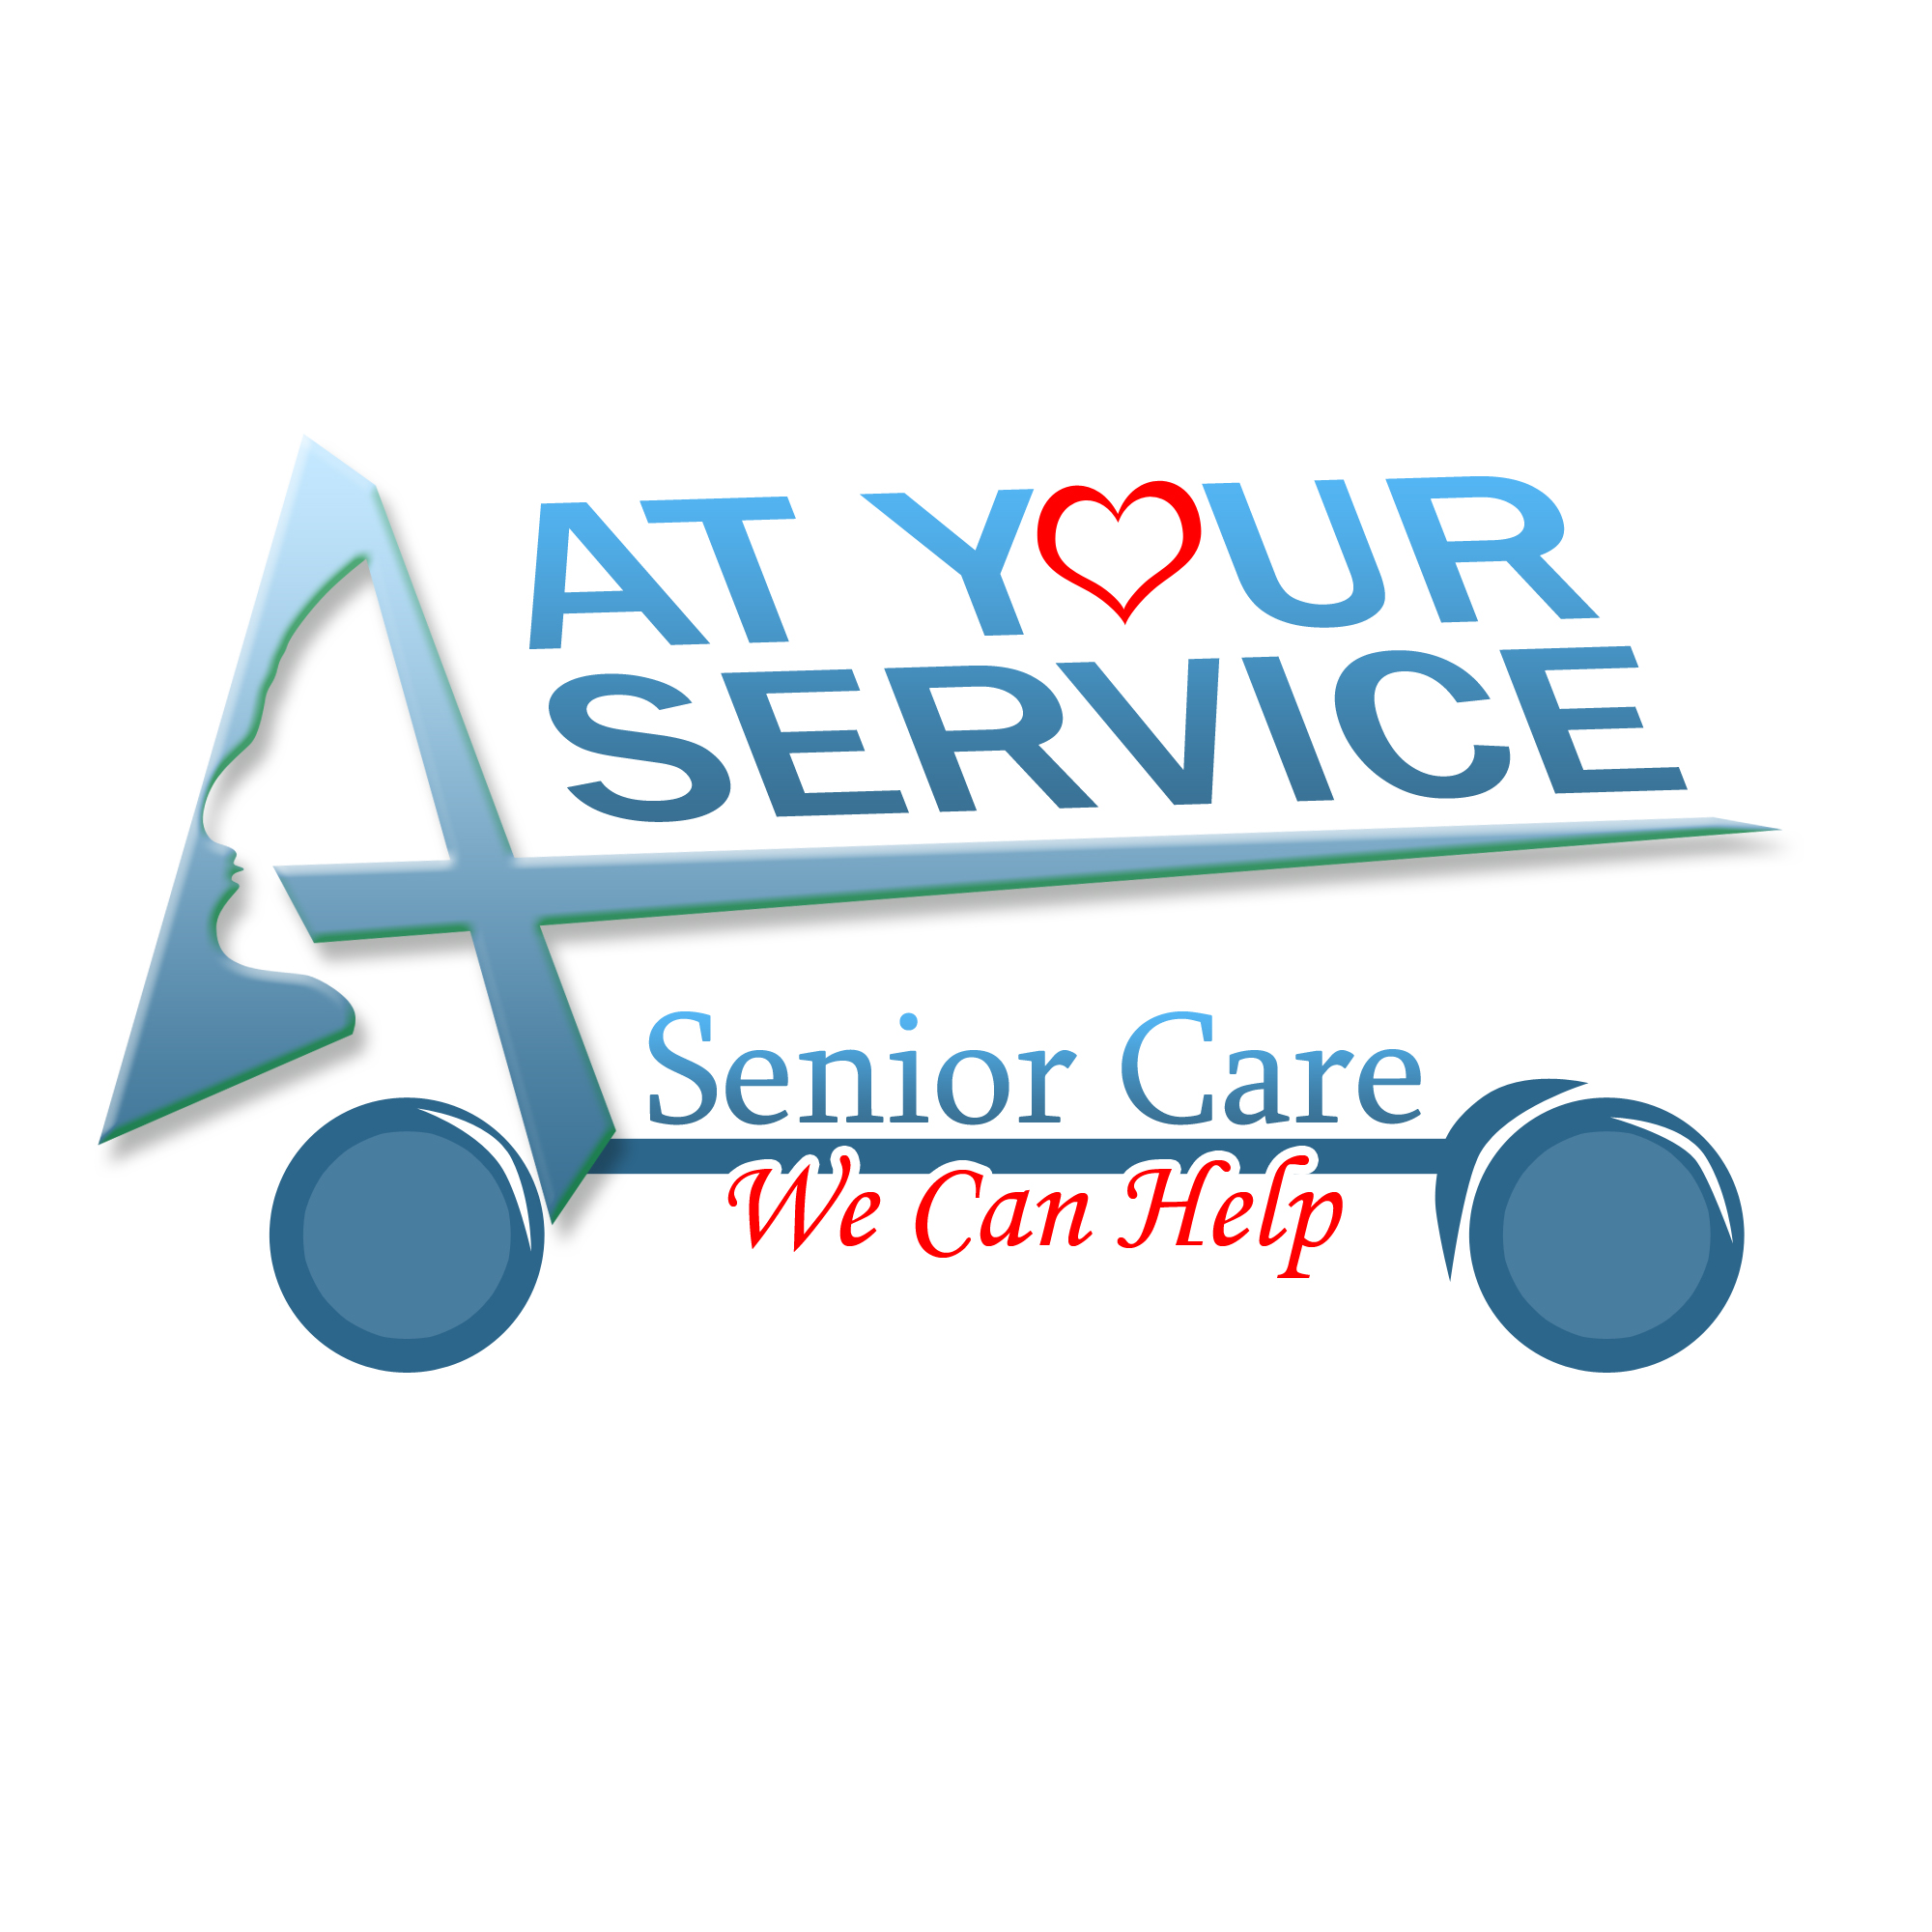 Logo Design by Ervin Beñez - Entry No. 34 in the Logo Design Contest Care To Go Services.